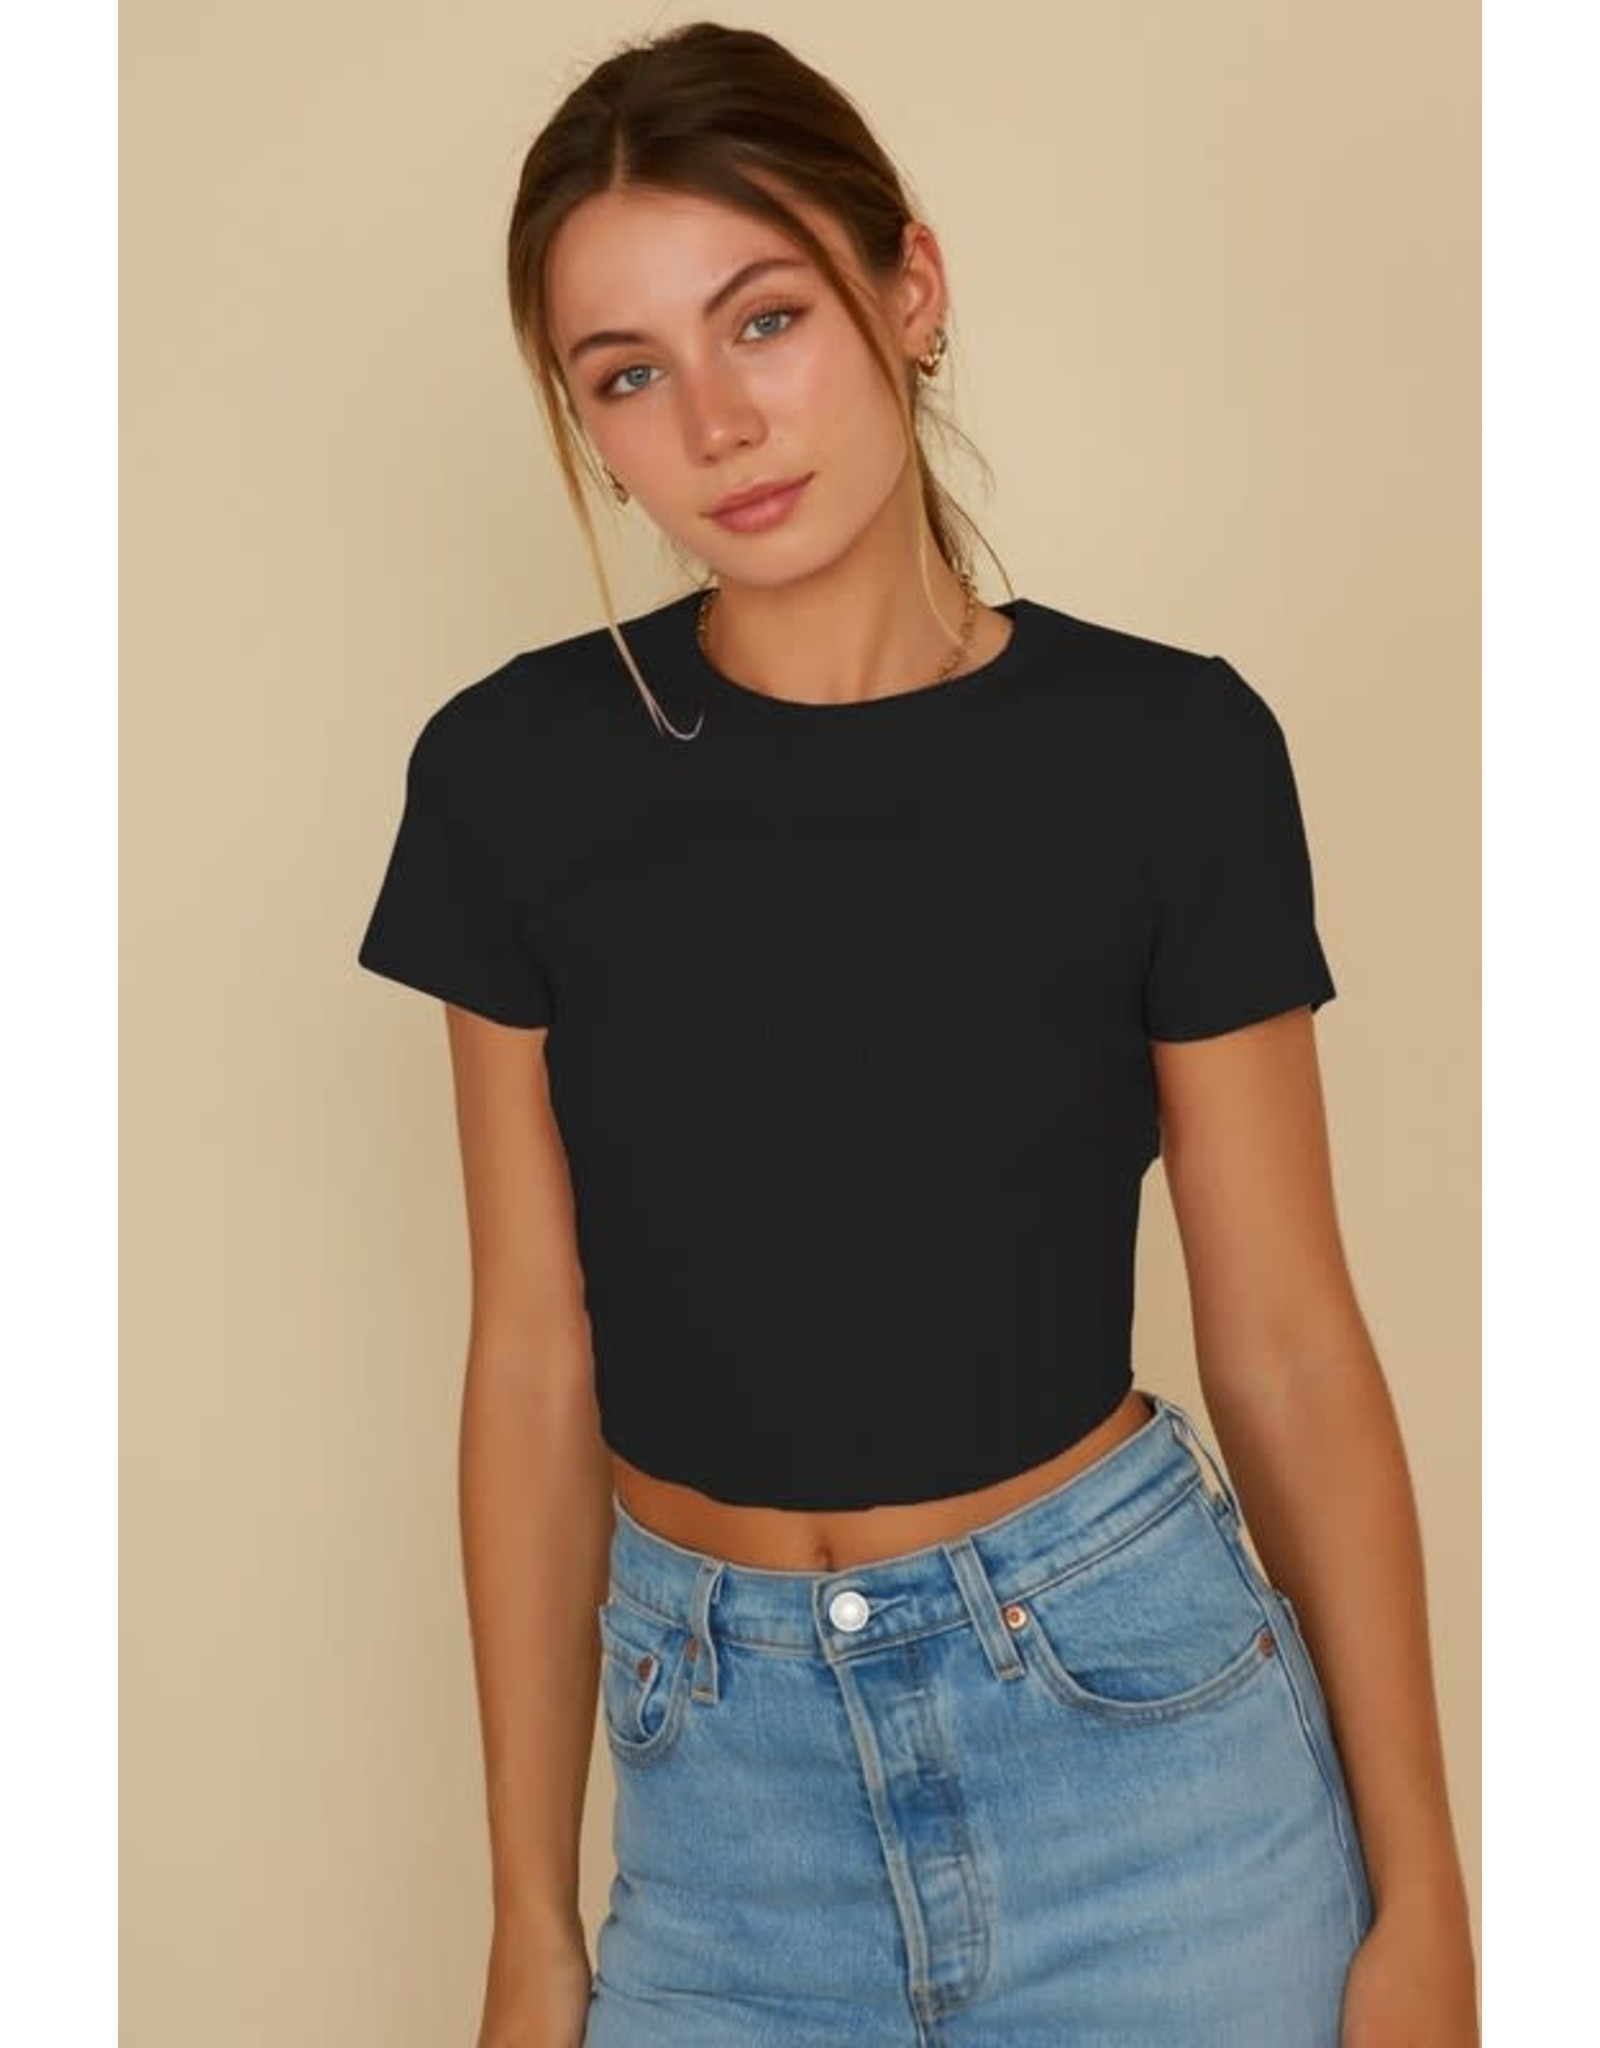 Alter Ego Ribbed Tee